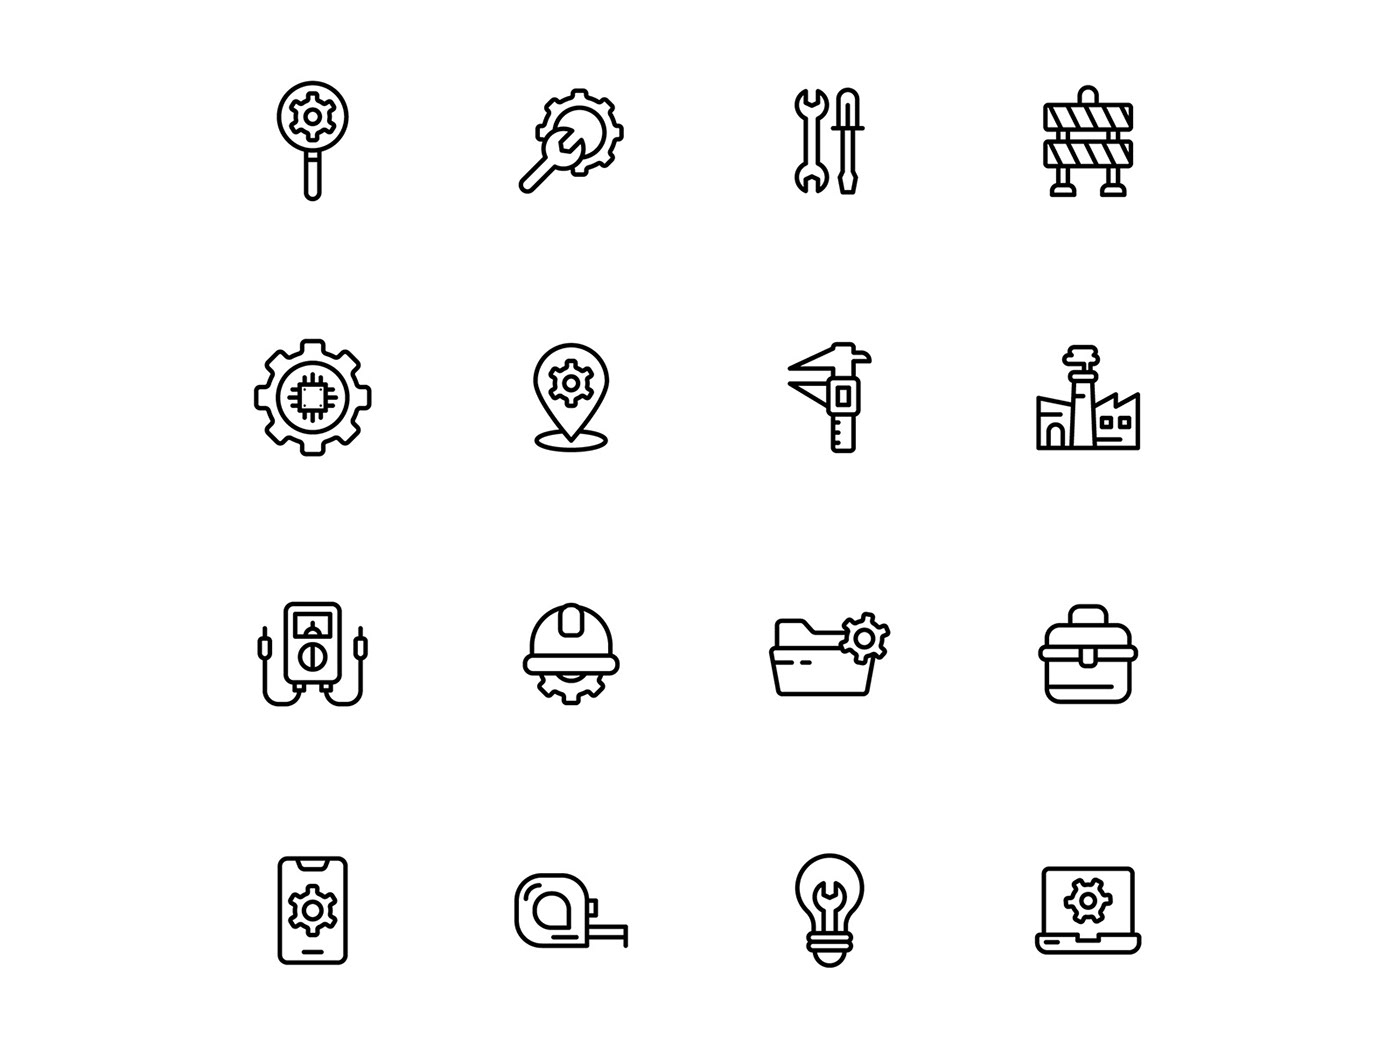 engineer icon engineer vector Engineering  freebie icon design  icons download icons pack icons set vector design vector icon